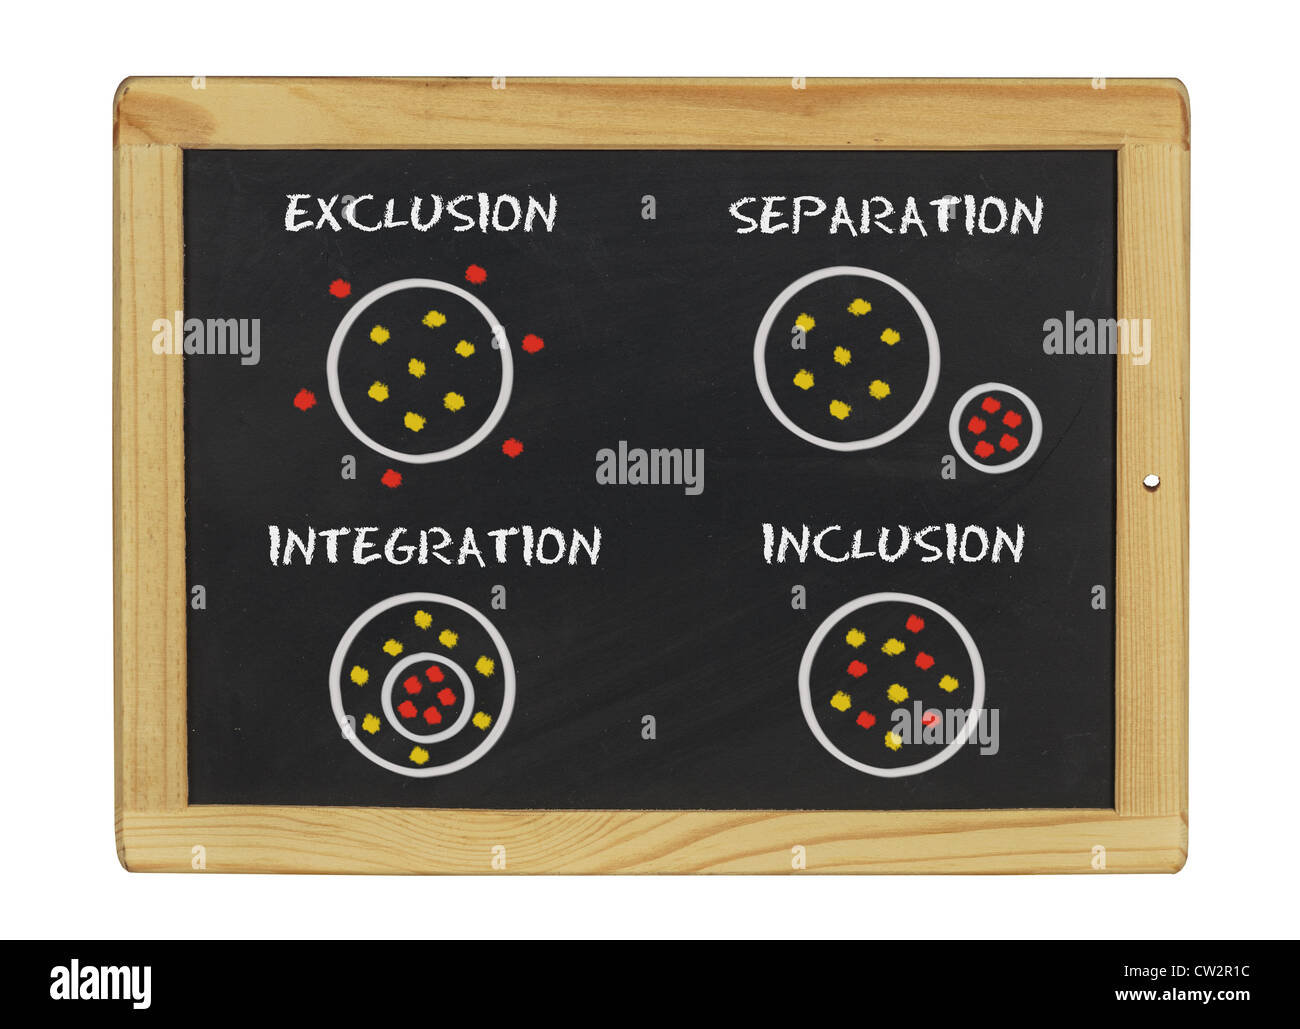 chalkboard with exclusion separation integration inclusion written on it - Stock Image